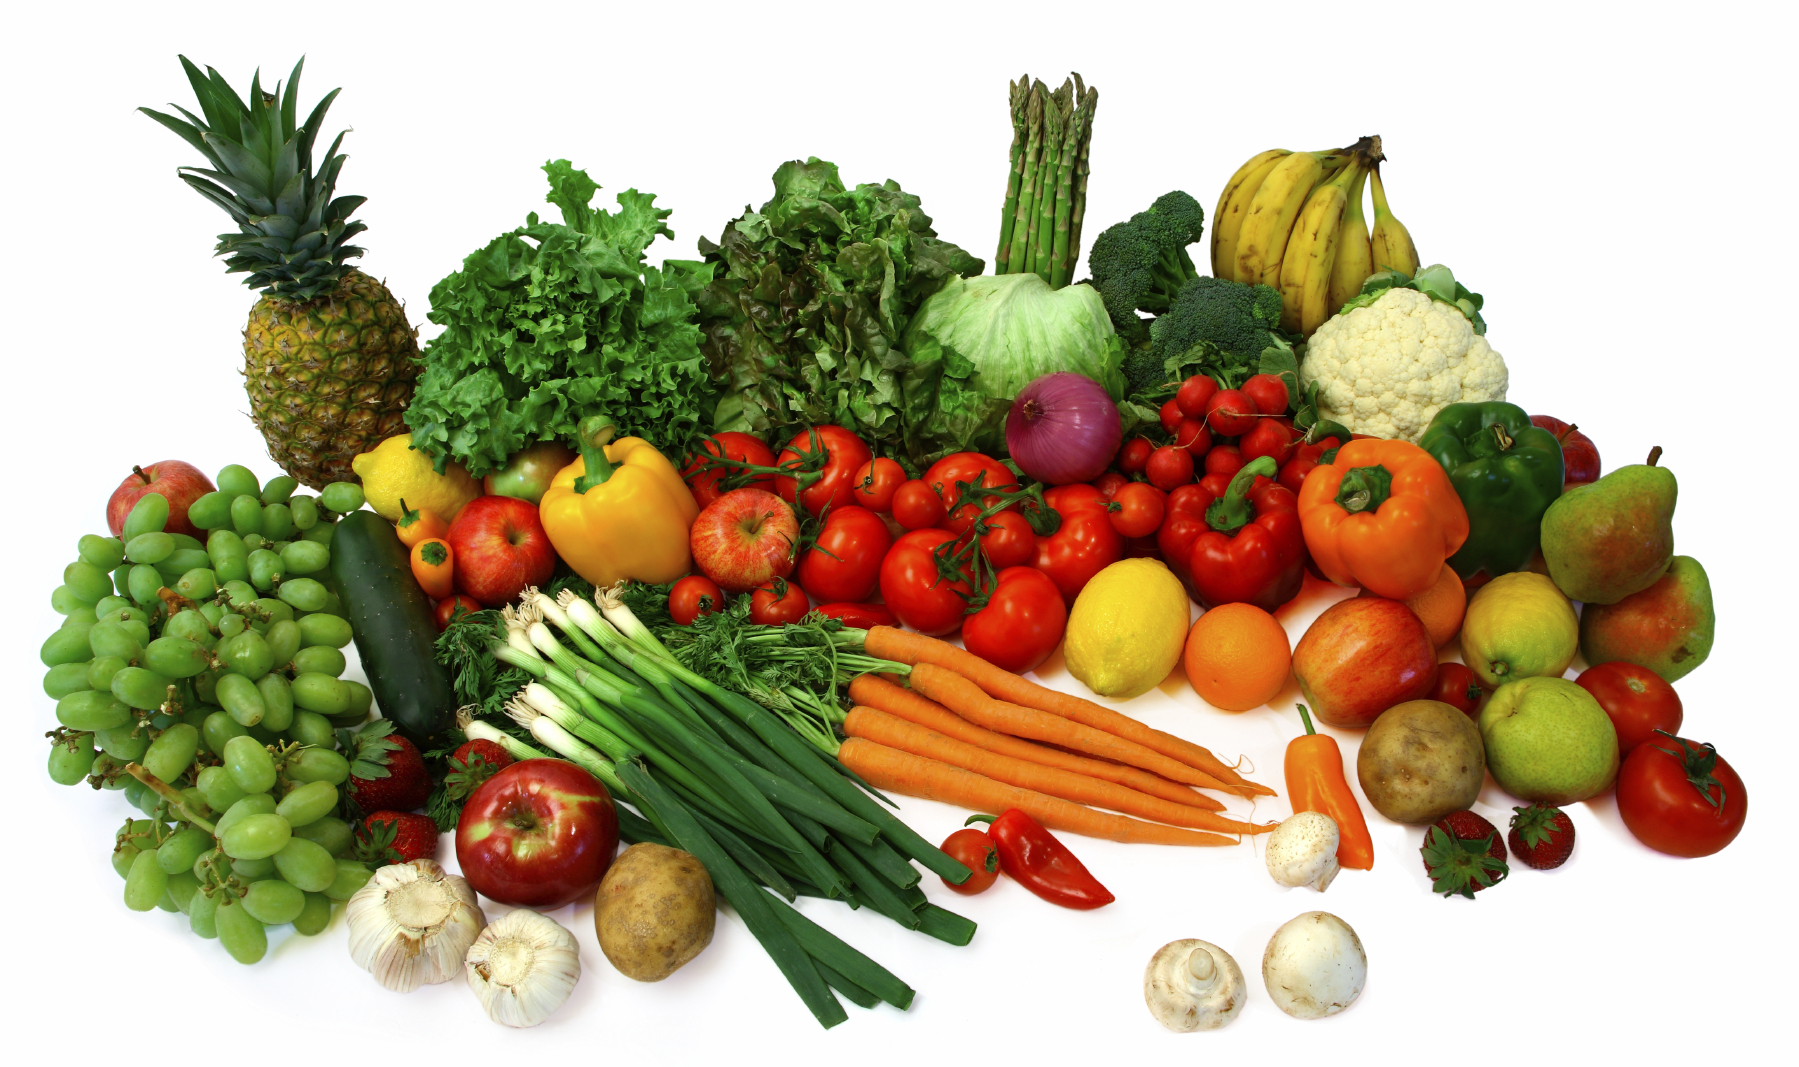 Multivitamin vegetables